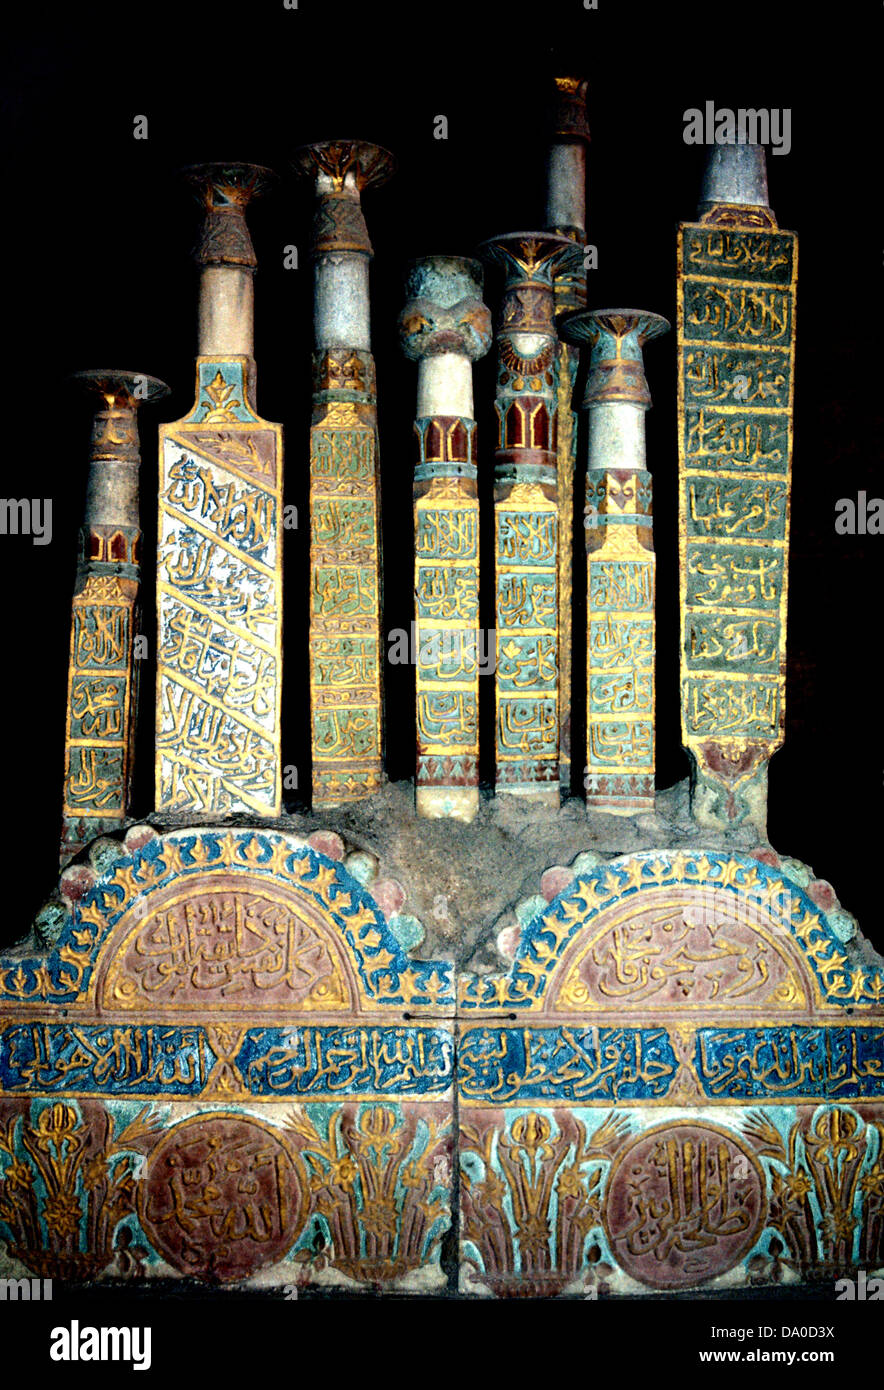 Ottoman tombs in Cairo's South Cemetery, Egypt - Stock Image